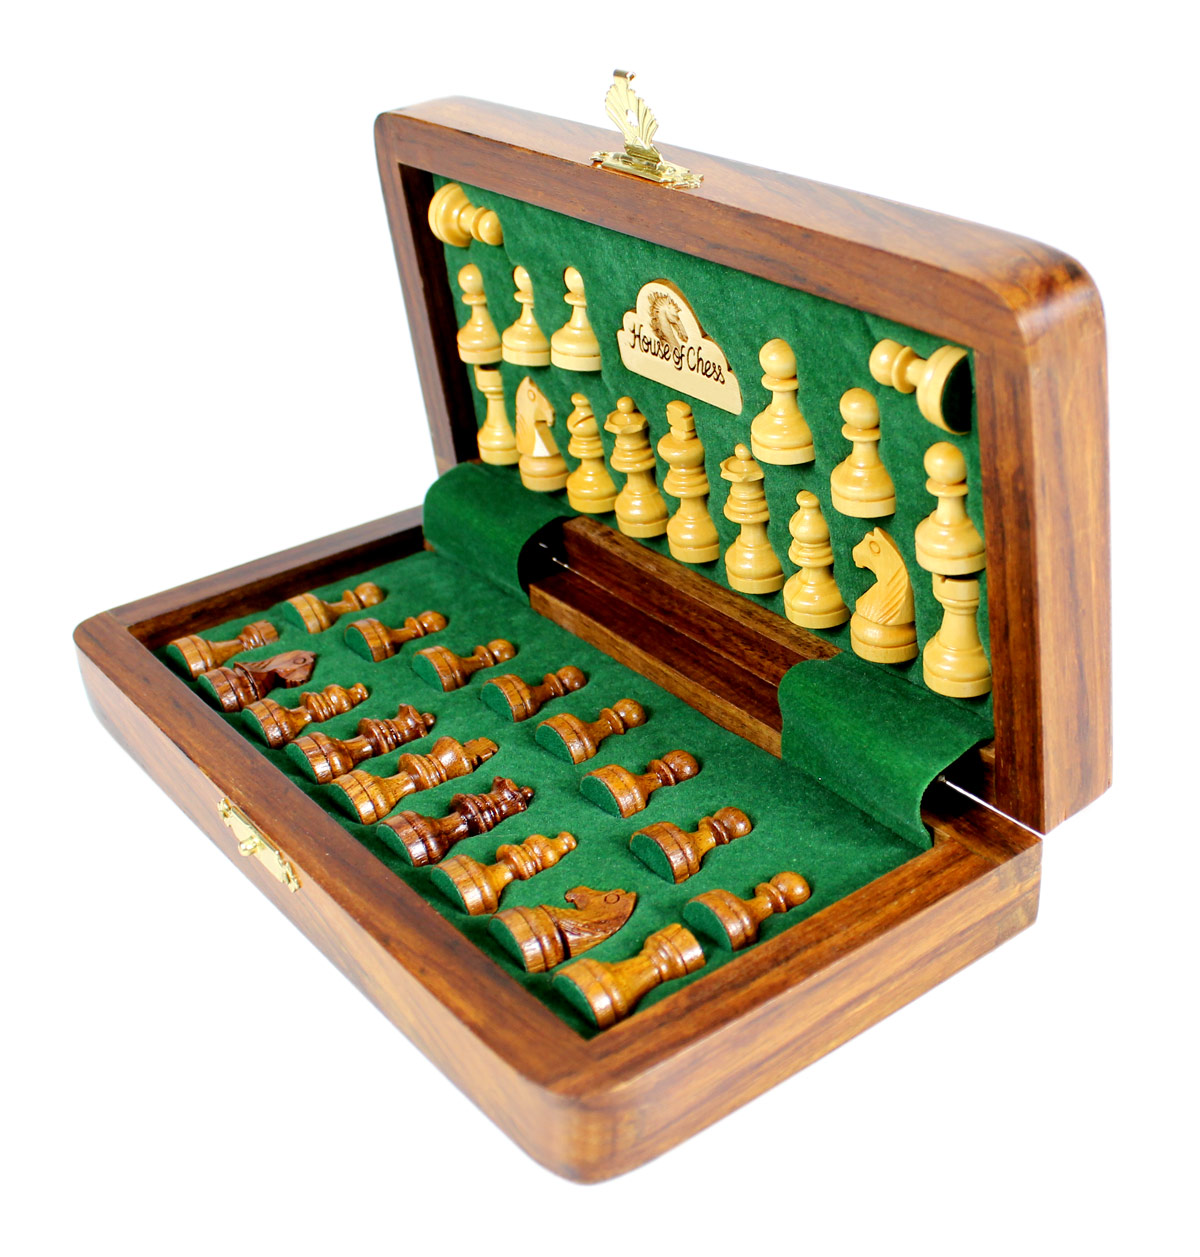 All chess pieces have felted bottom.  The weight of the chess set is 1.124 lbs (510 grams)